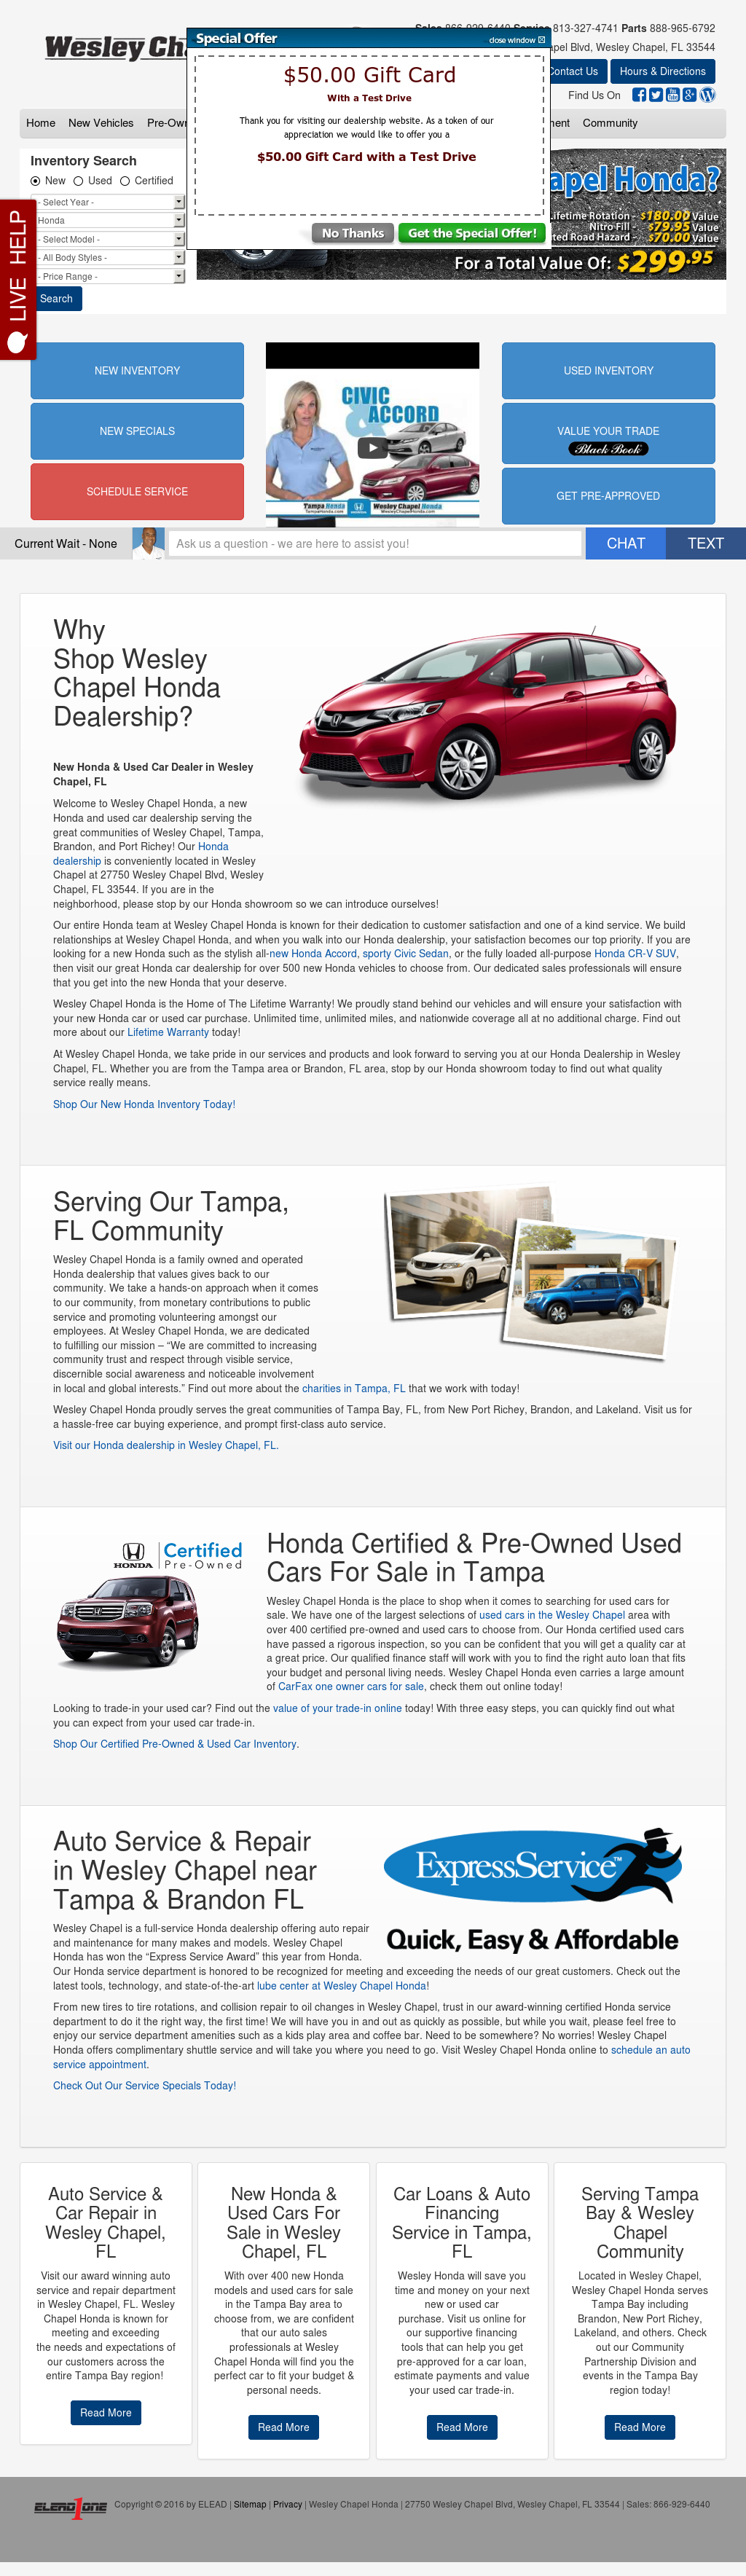 Wesley Chapel Honda Competitors, Revenue And Employees   Owler Company  Profile